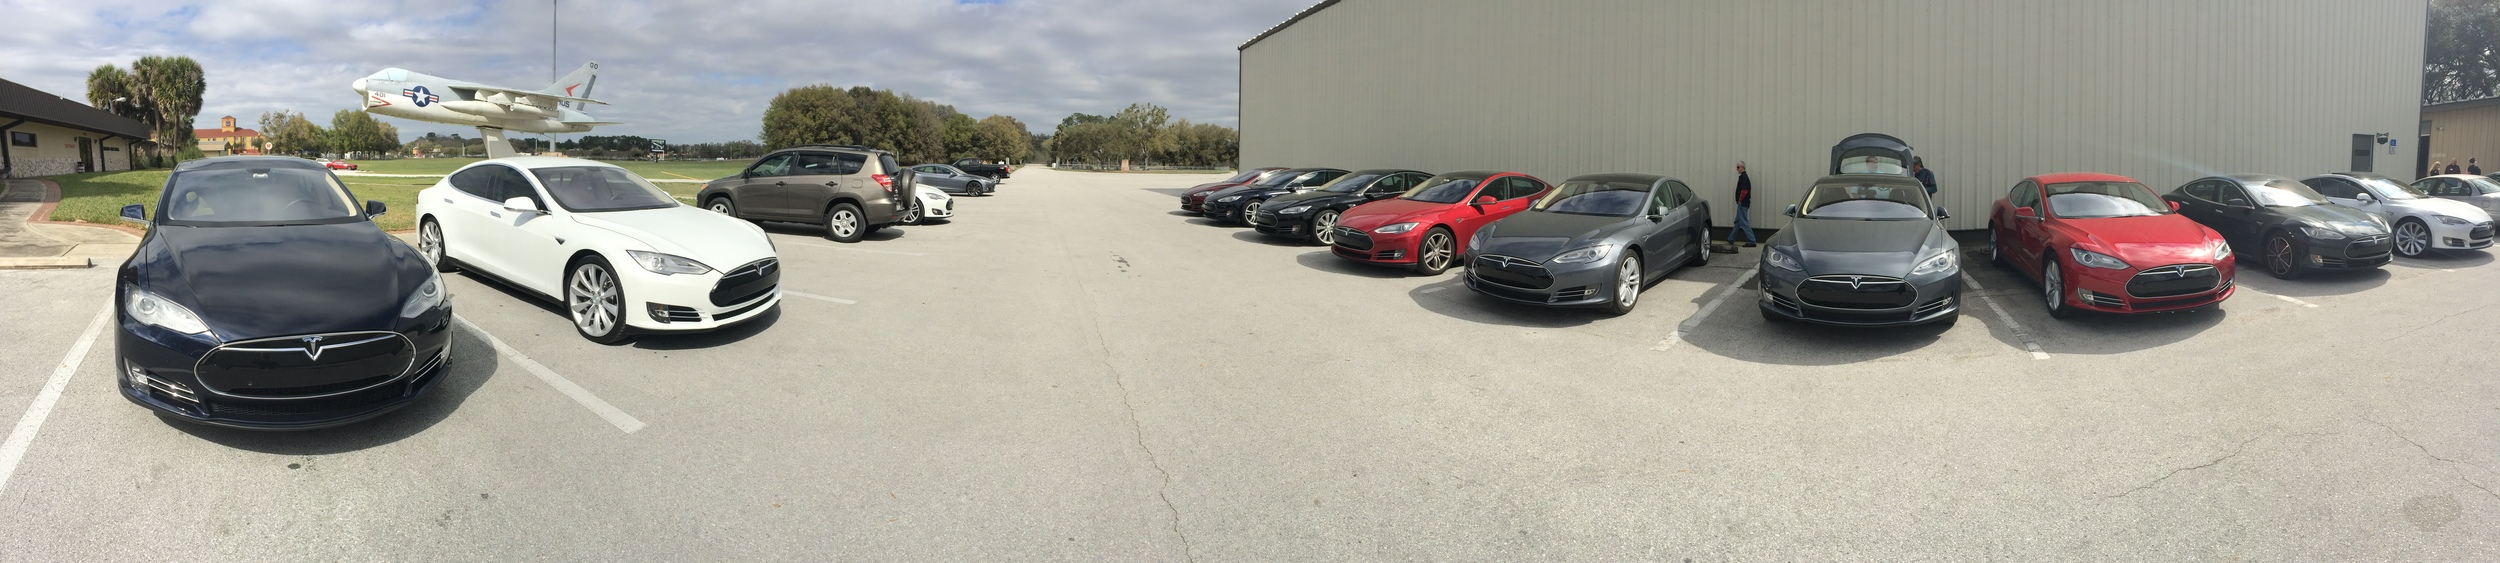 Model S Meetup at the Don Garlits Museum of Drag Racing in Ocala, Florida